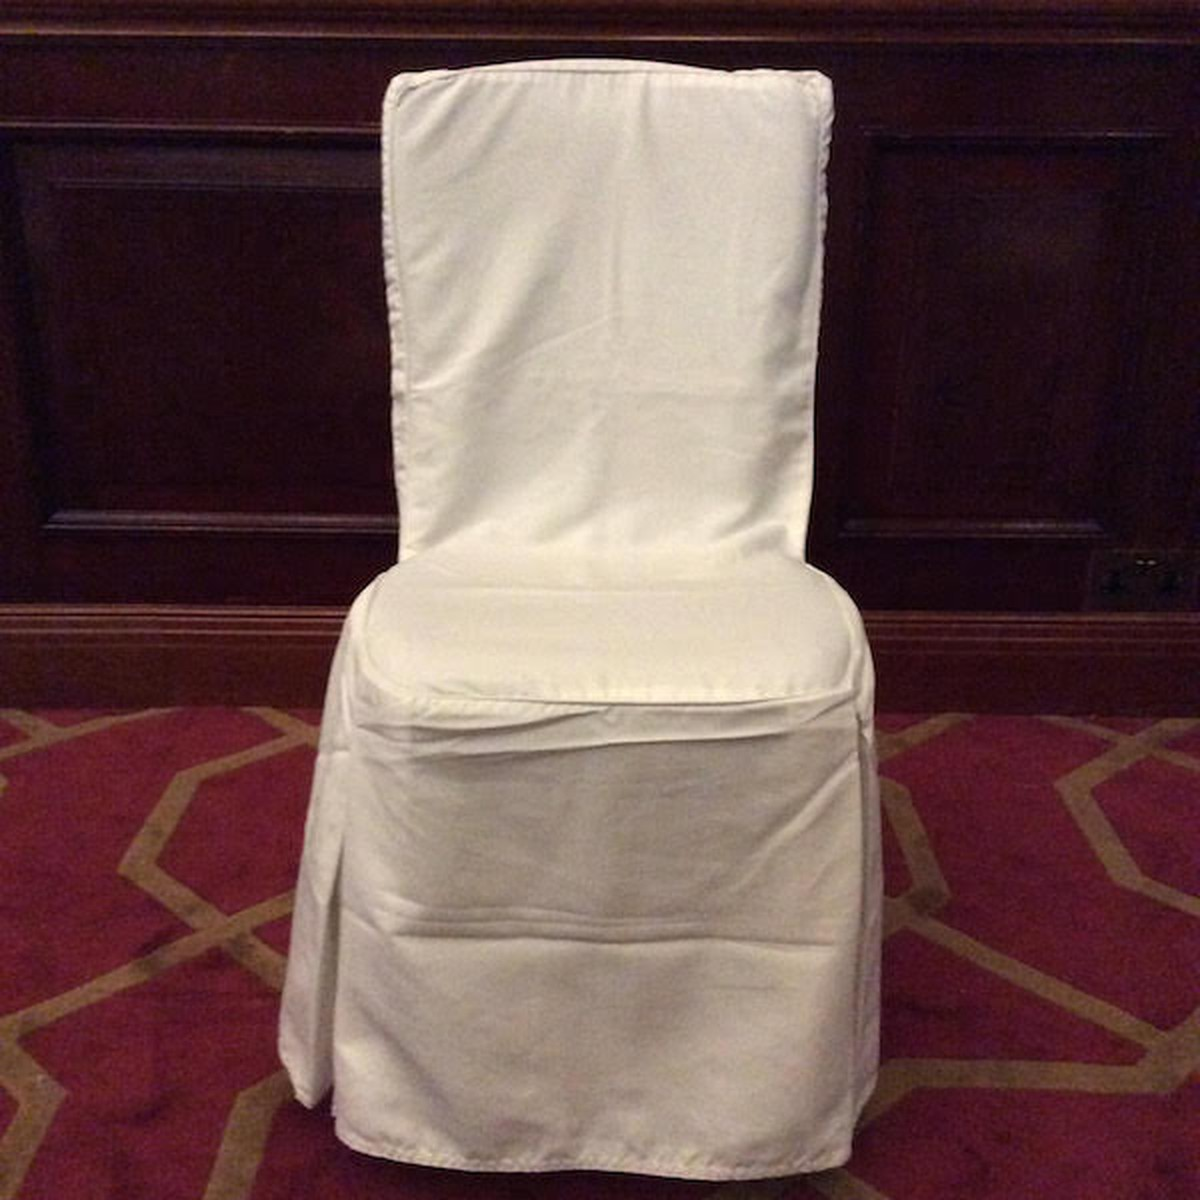 decorative chair covers for sale wing living room secondhand catering equipment table linen and decor